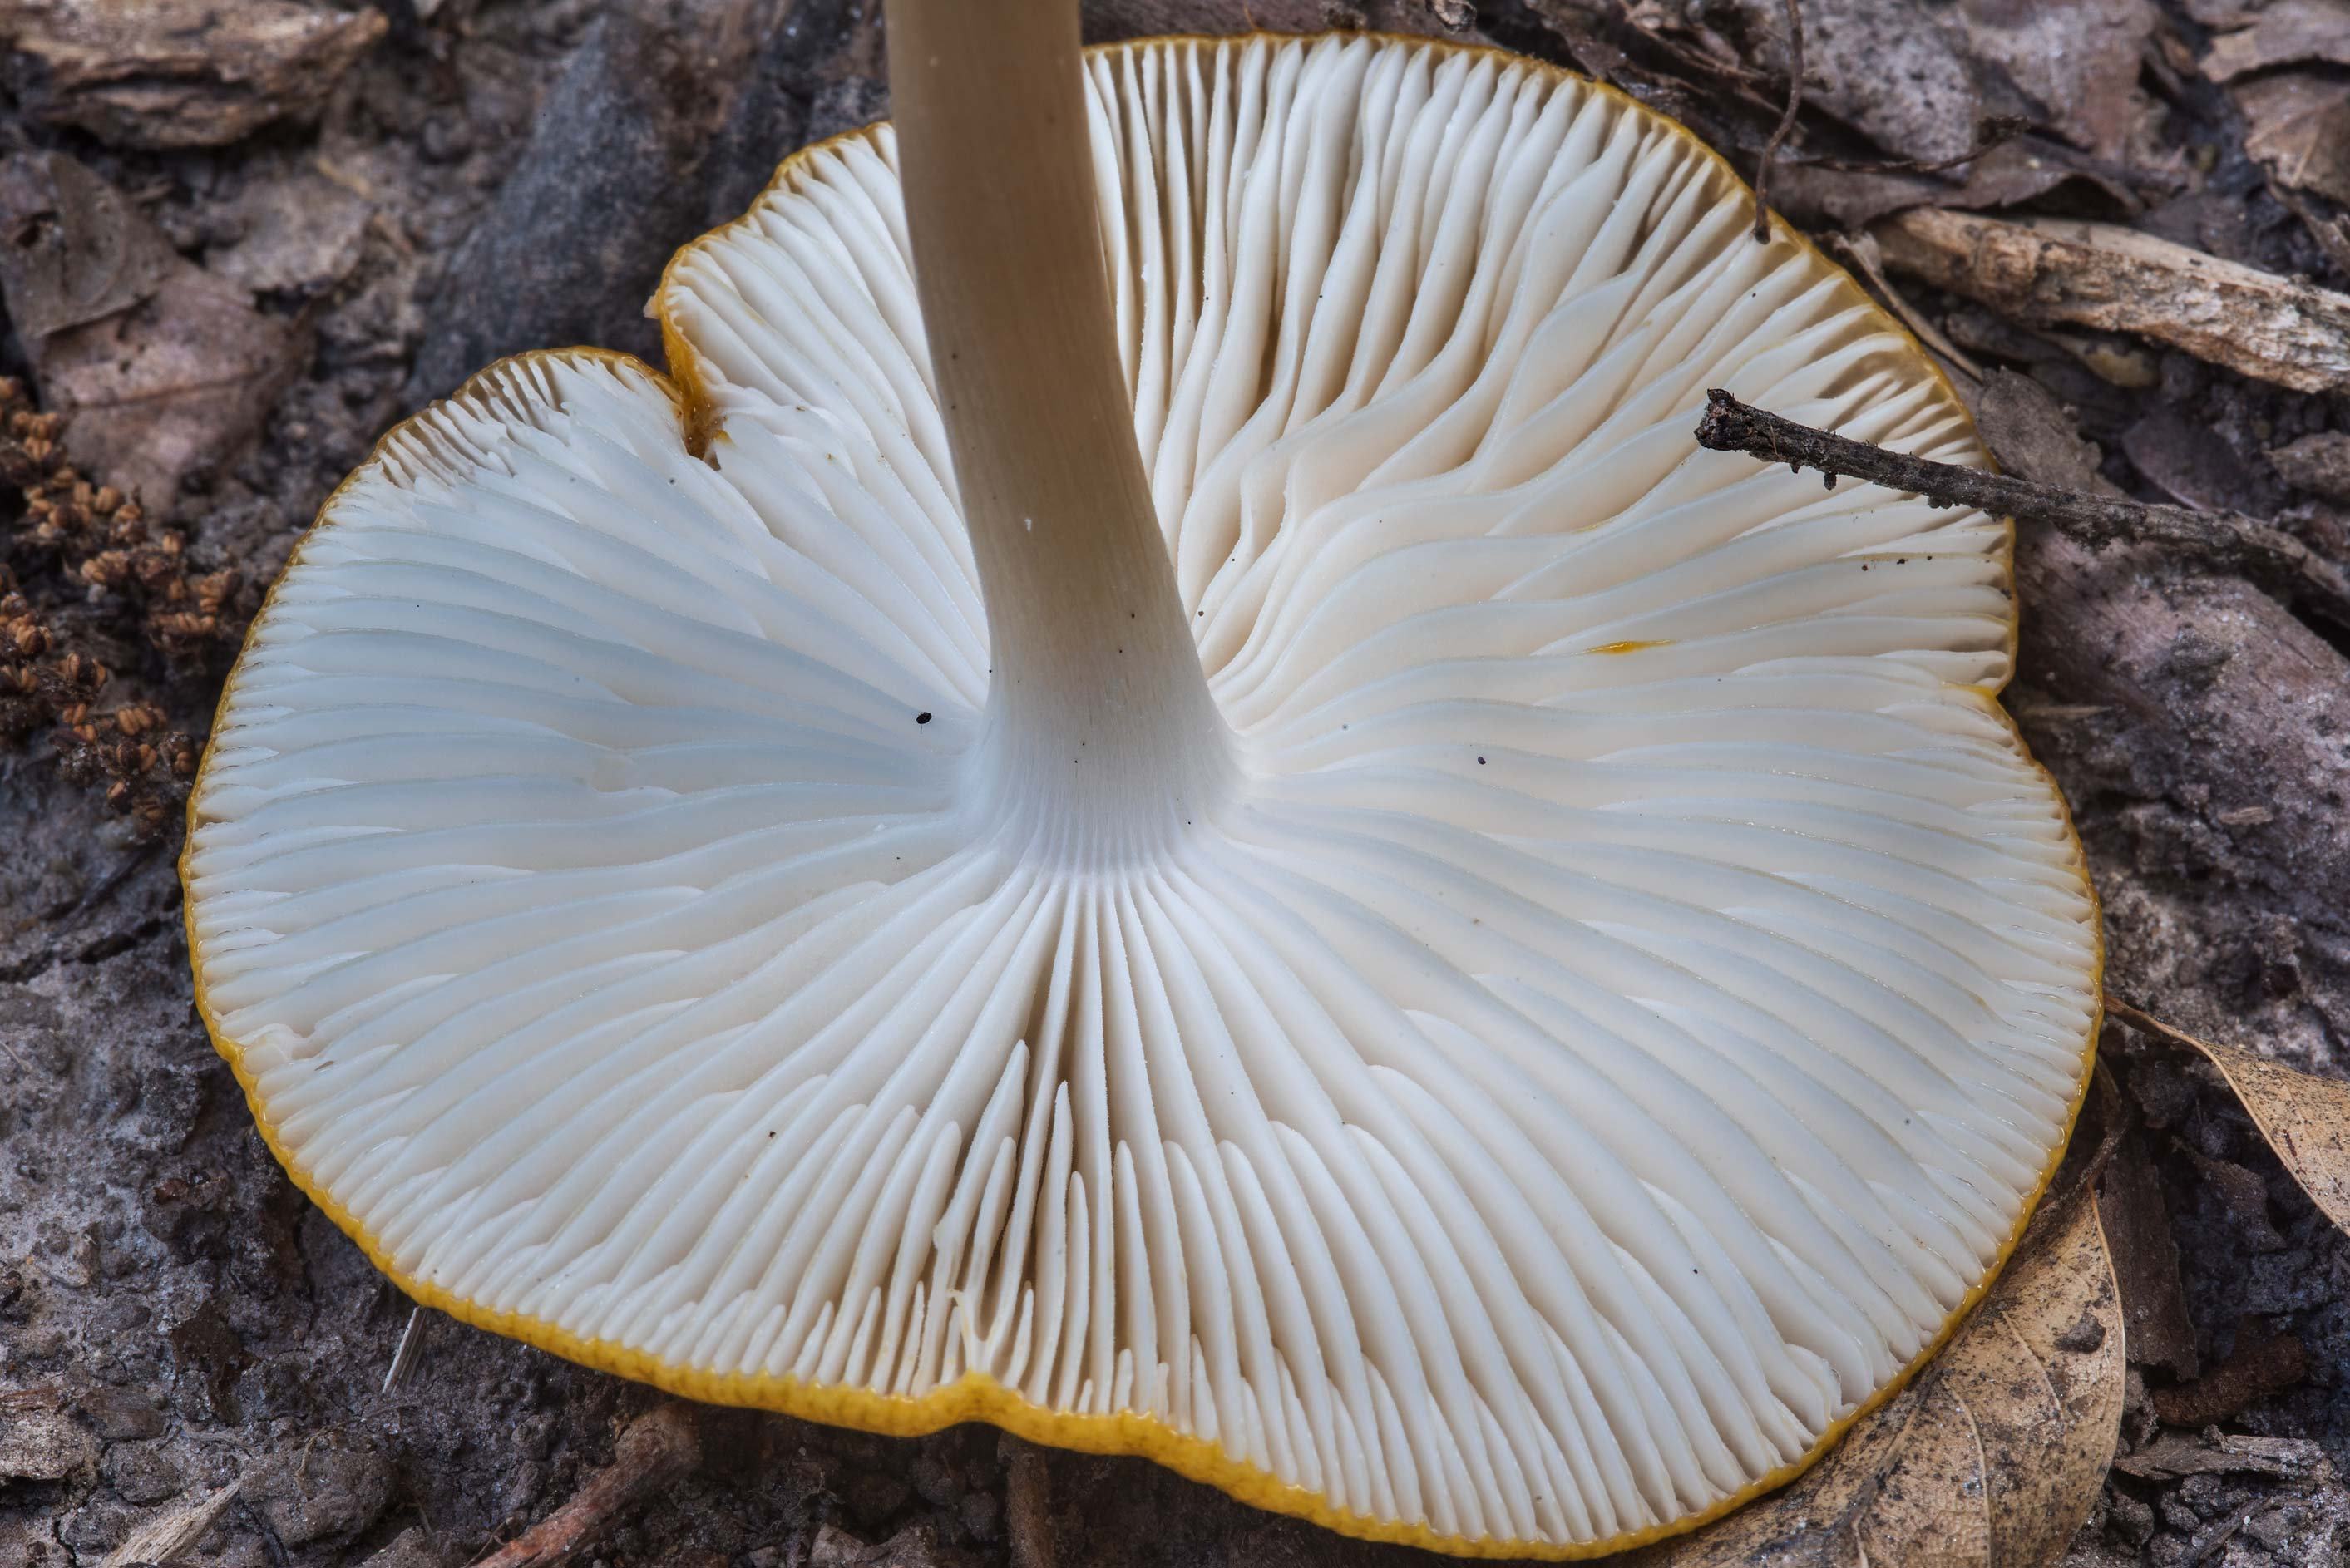 Gills of a rooted agaric mushroom Hymenopellis...Creek Park. College Station, Texas